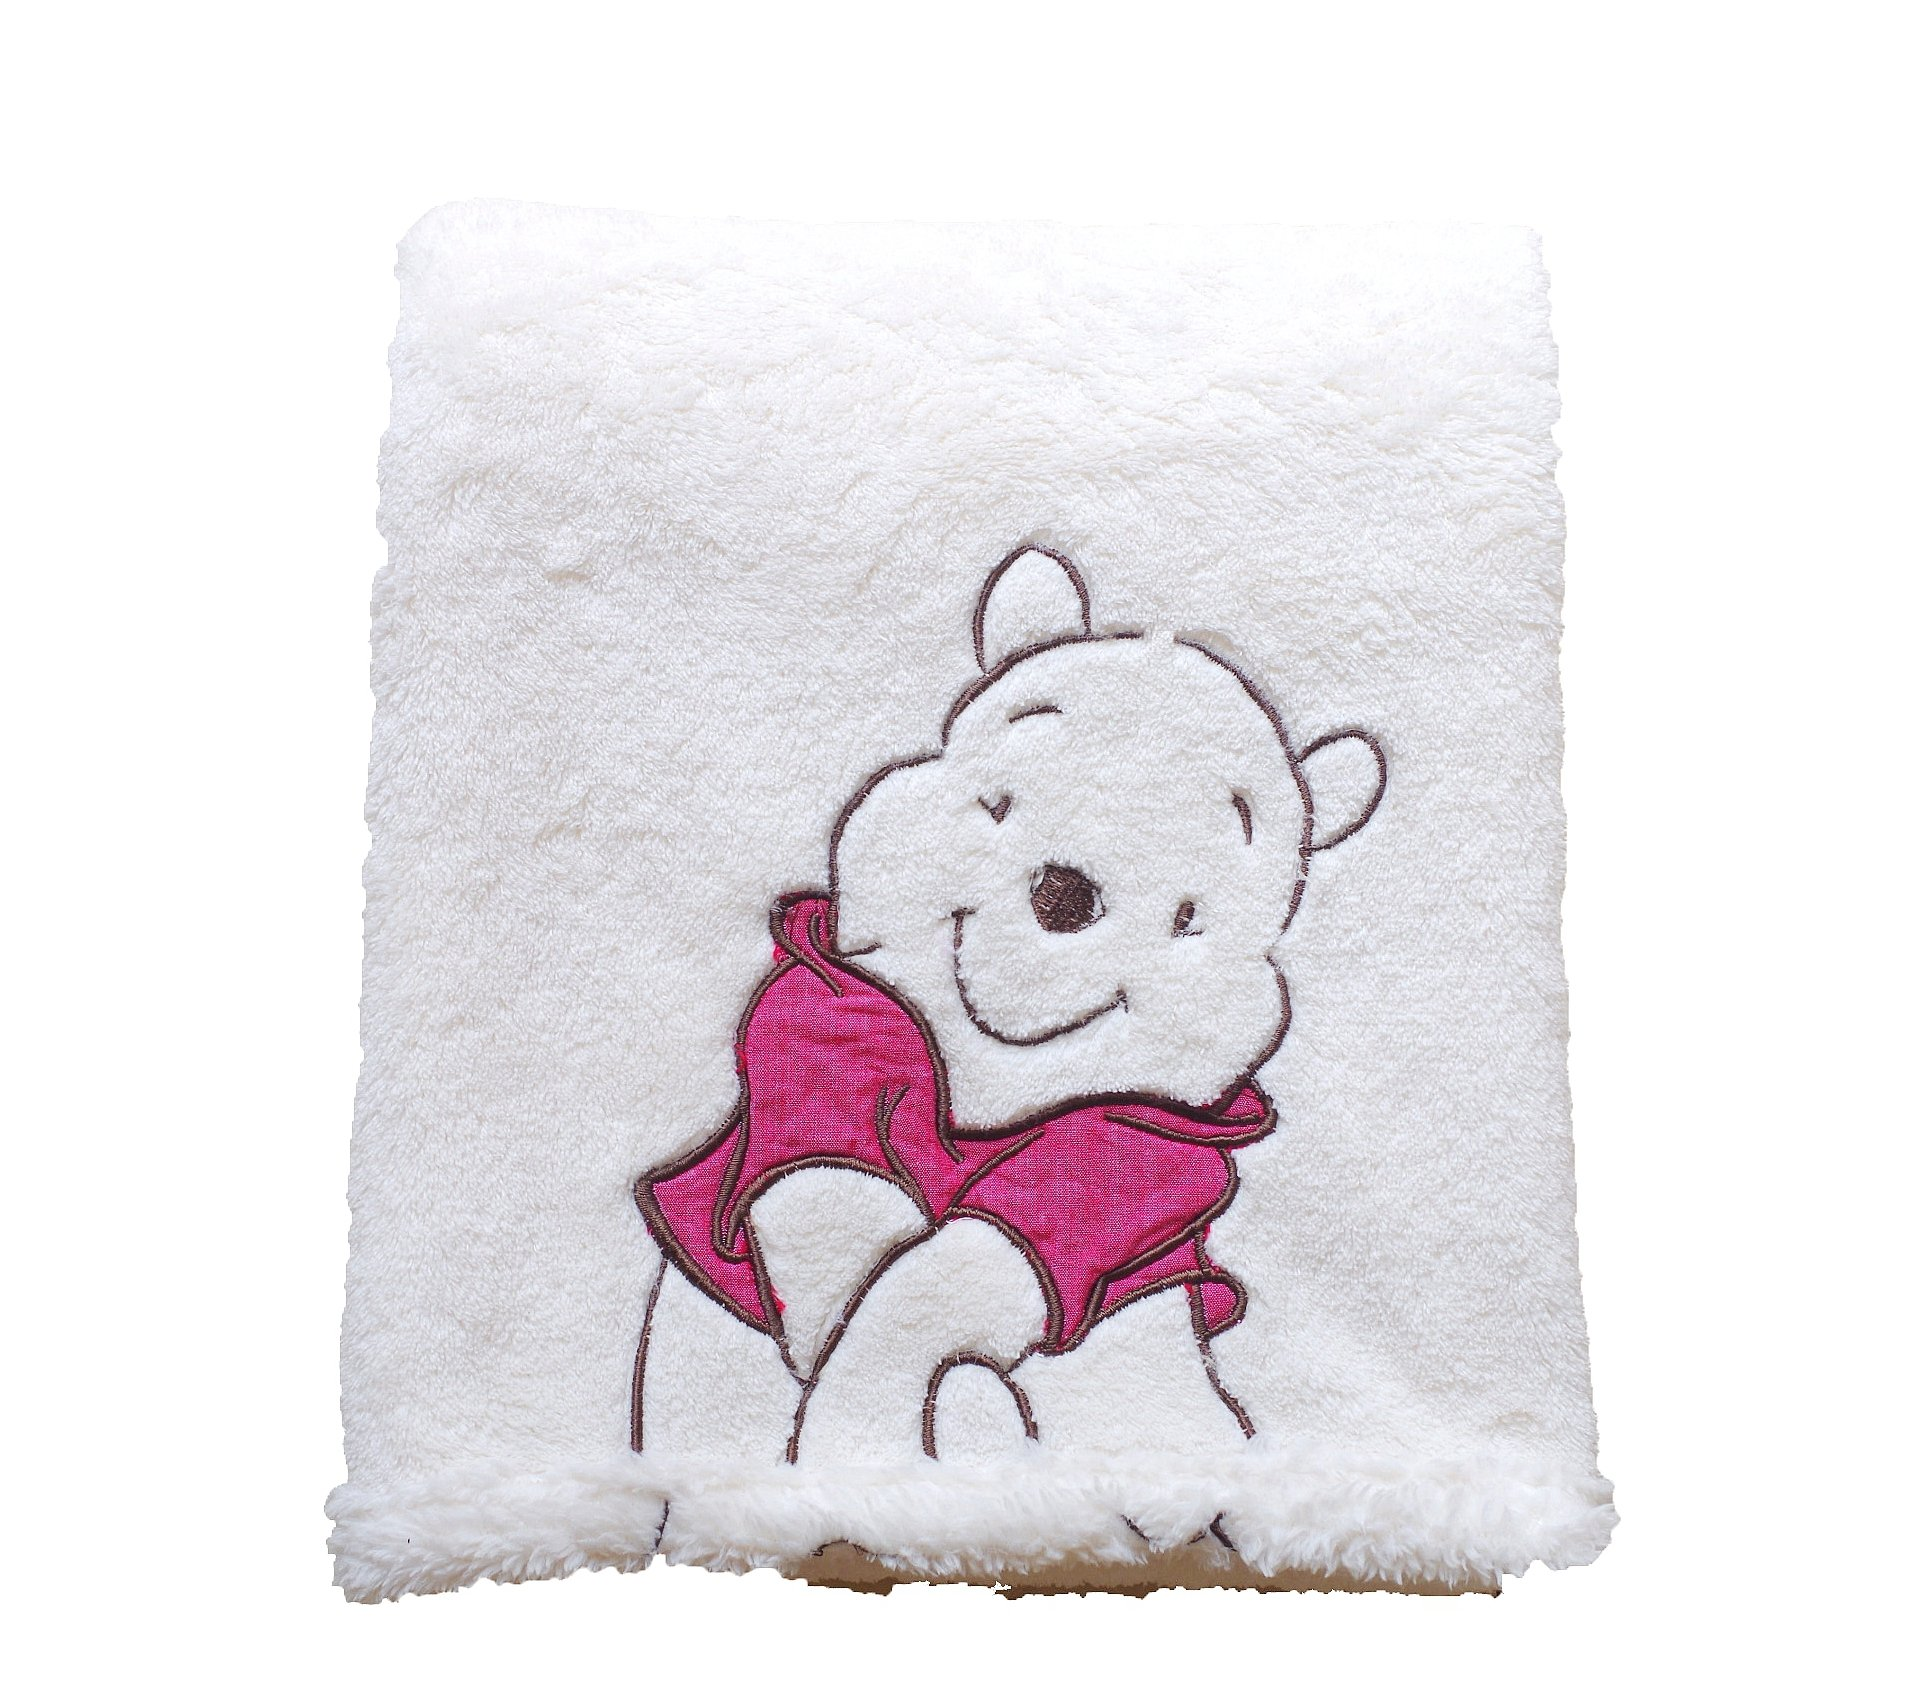 Cozy Line Home Fashions Super Soft Coral Fleece Baby Blanket, Cute Animal Pattern, 40'' X 30'' Cozy, Comfortable & Warm , Best Gift for Baby Boy Baby Girl (Ivory Winnie The Pooh)